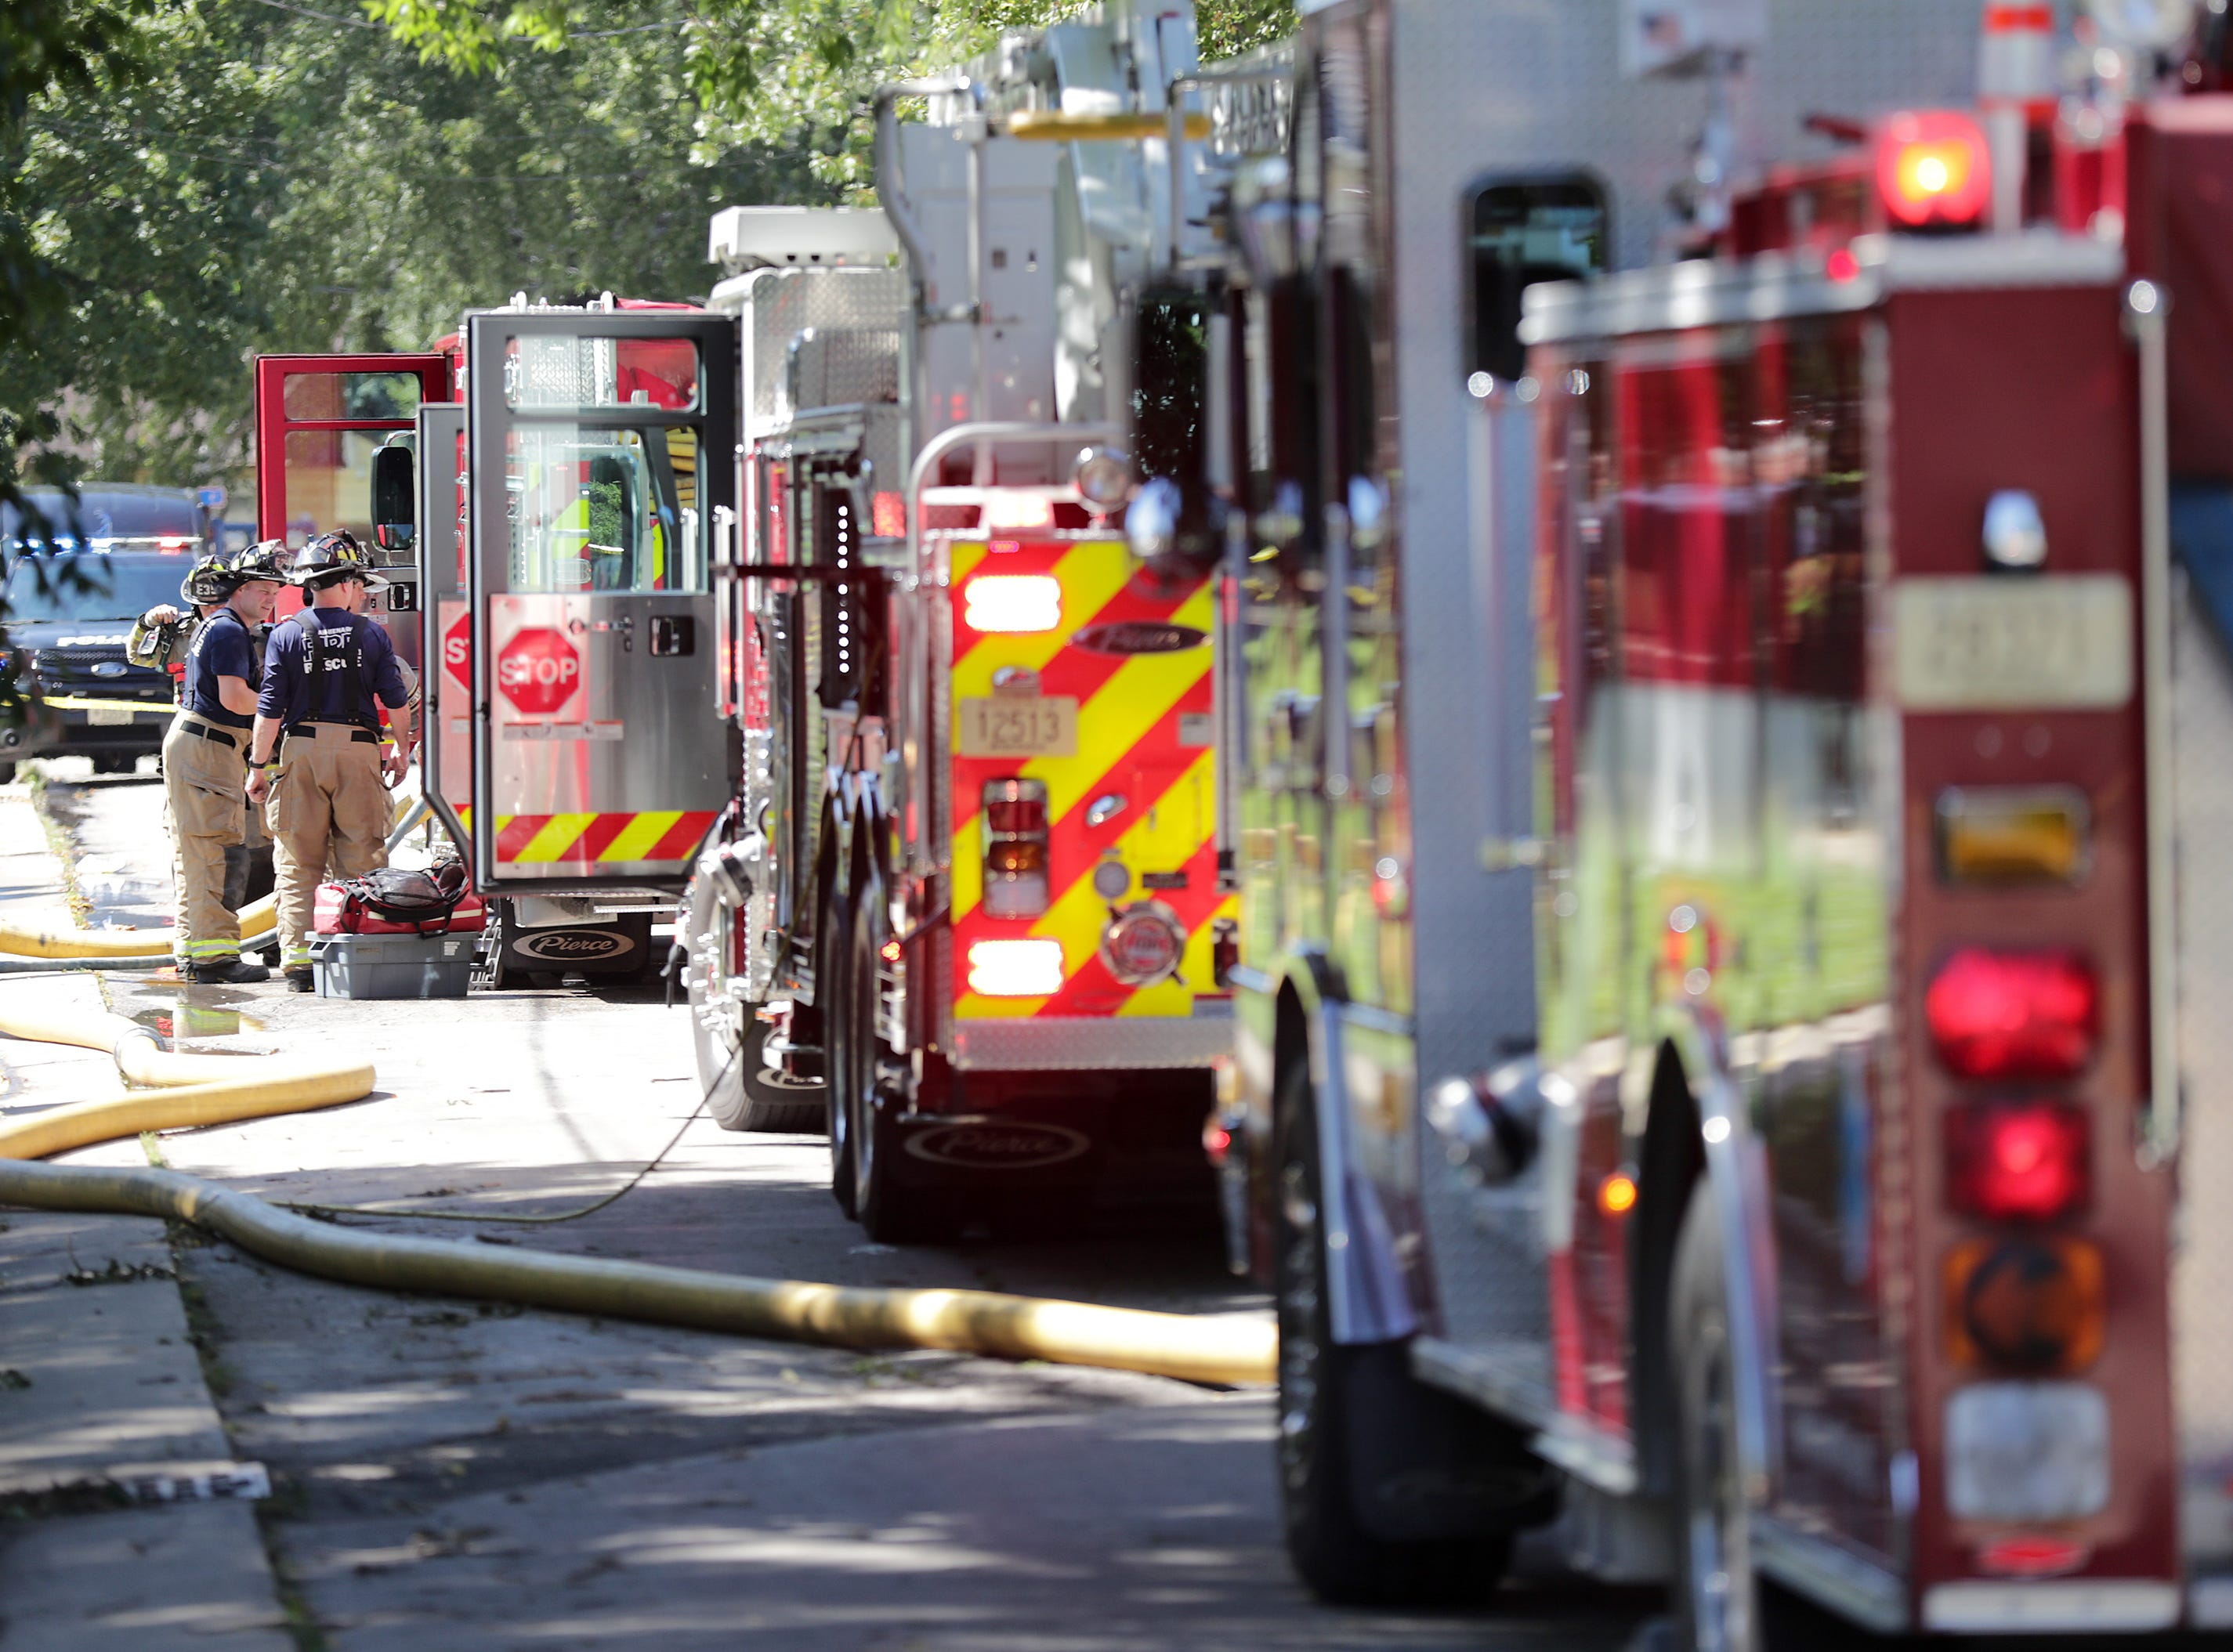 Firefighters and police on the scene of a structure fire in the 100 block of First Street,   on Thursday, September 6, 2018, in Menasha, Wis.  Kevin Kloehn, chief of Neenah-Menasha Fire Rescue, said one person was injured and three others were rescued in the fire.